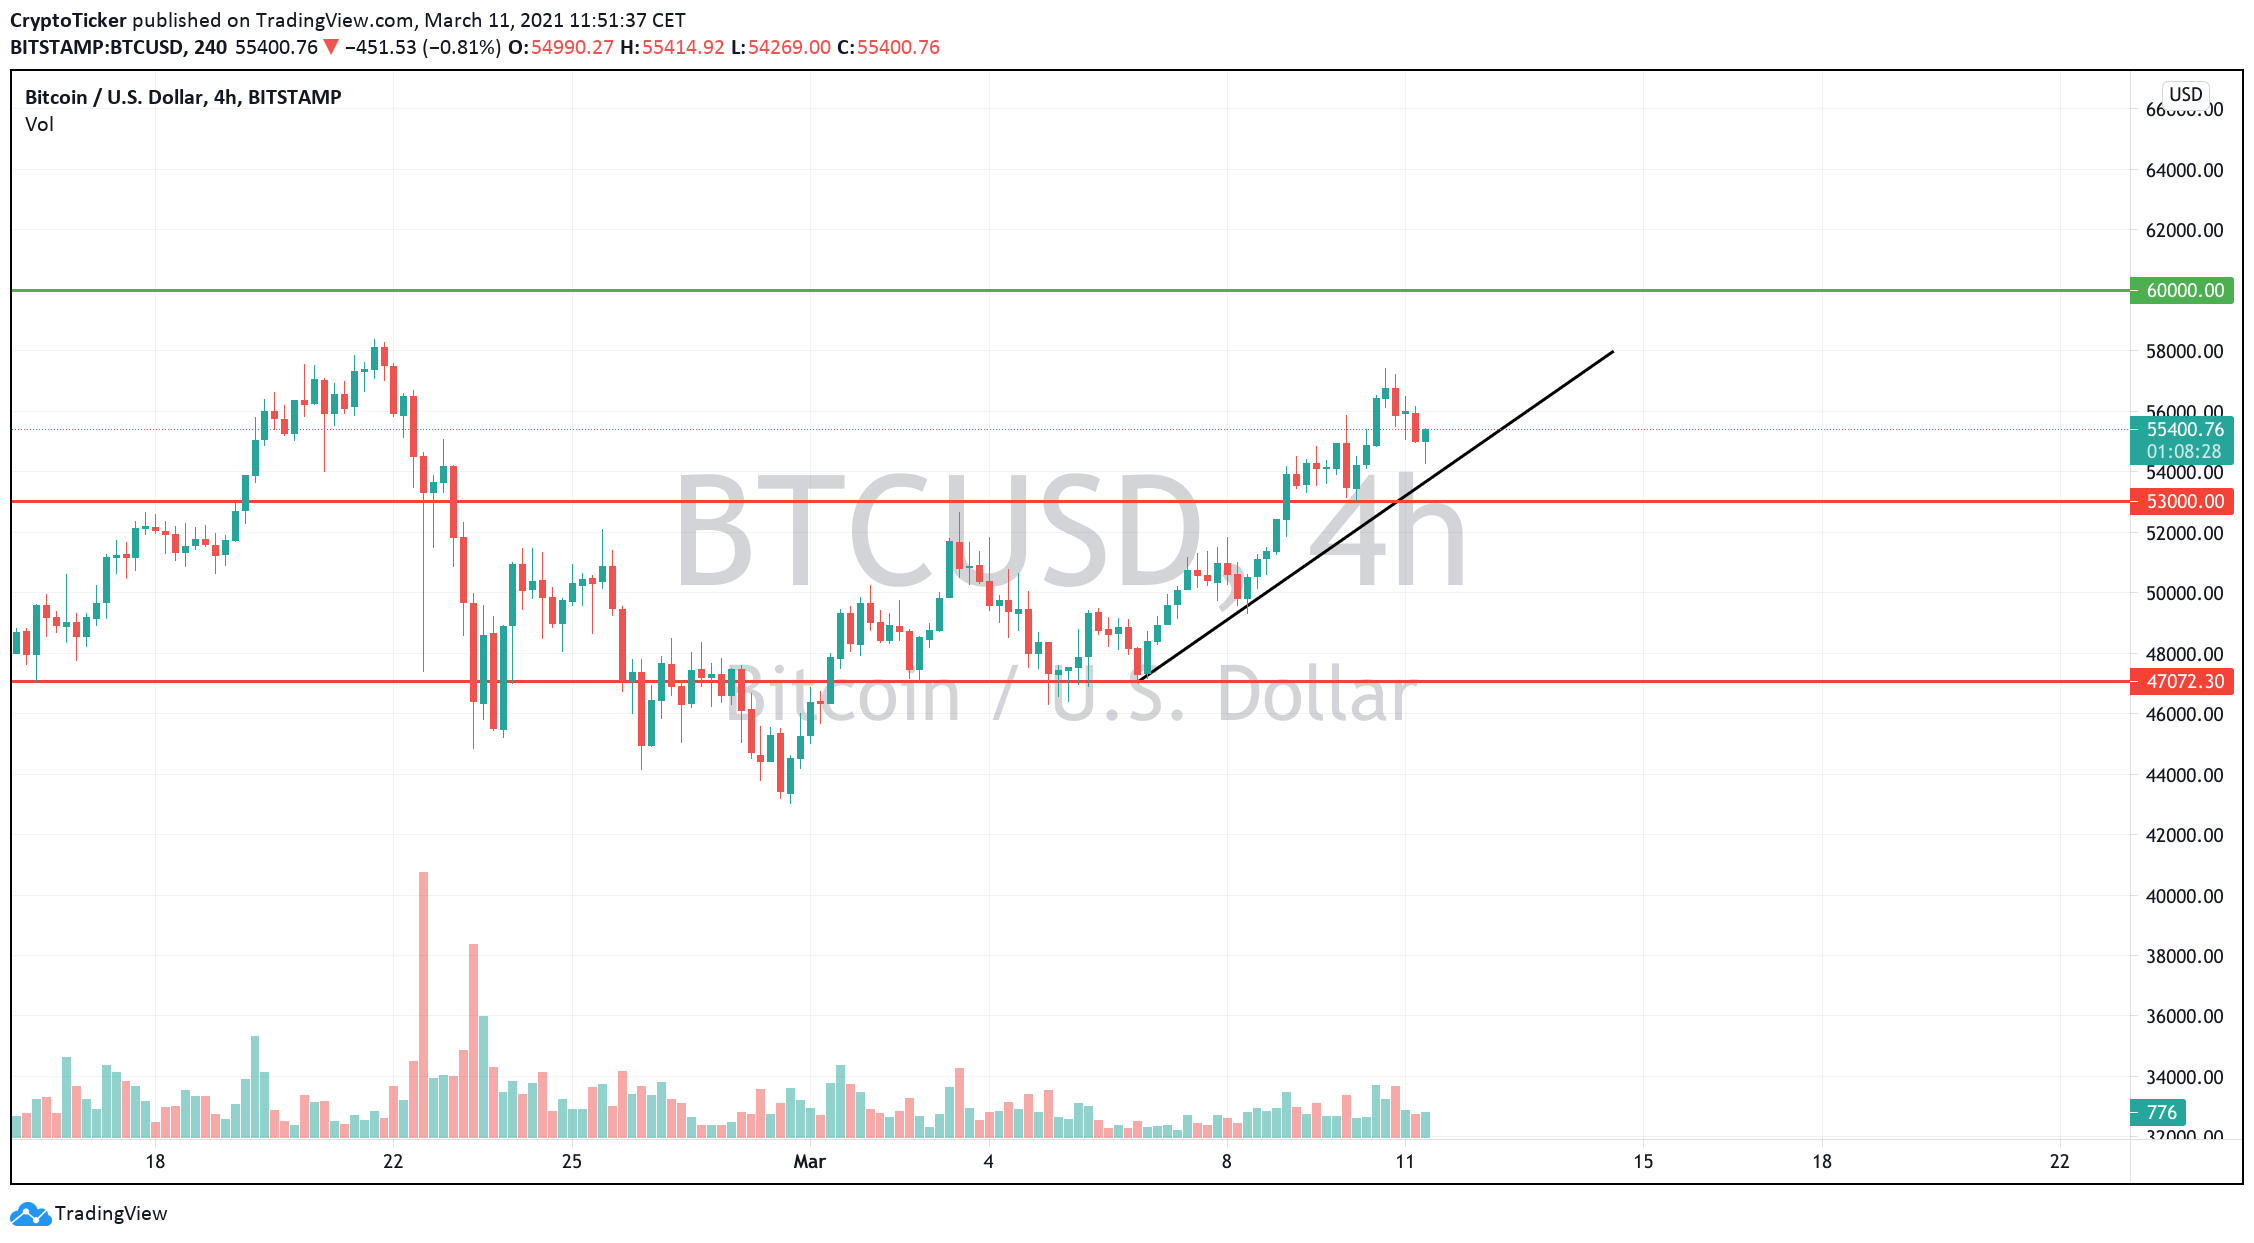 BTC/USD 4-hours chart showing a trade idea for Bitcoin